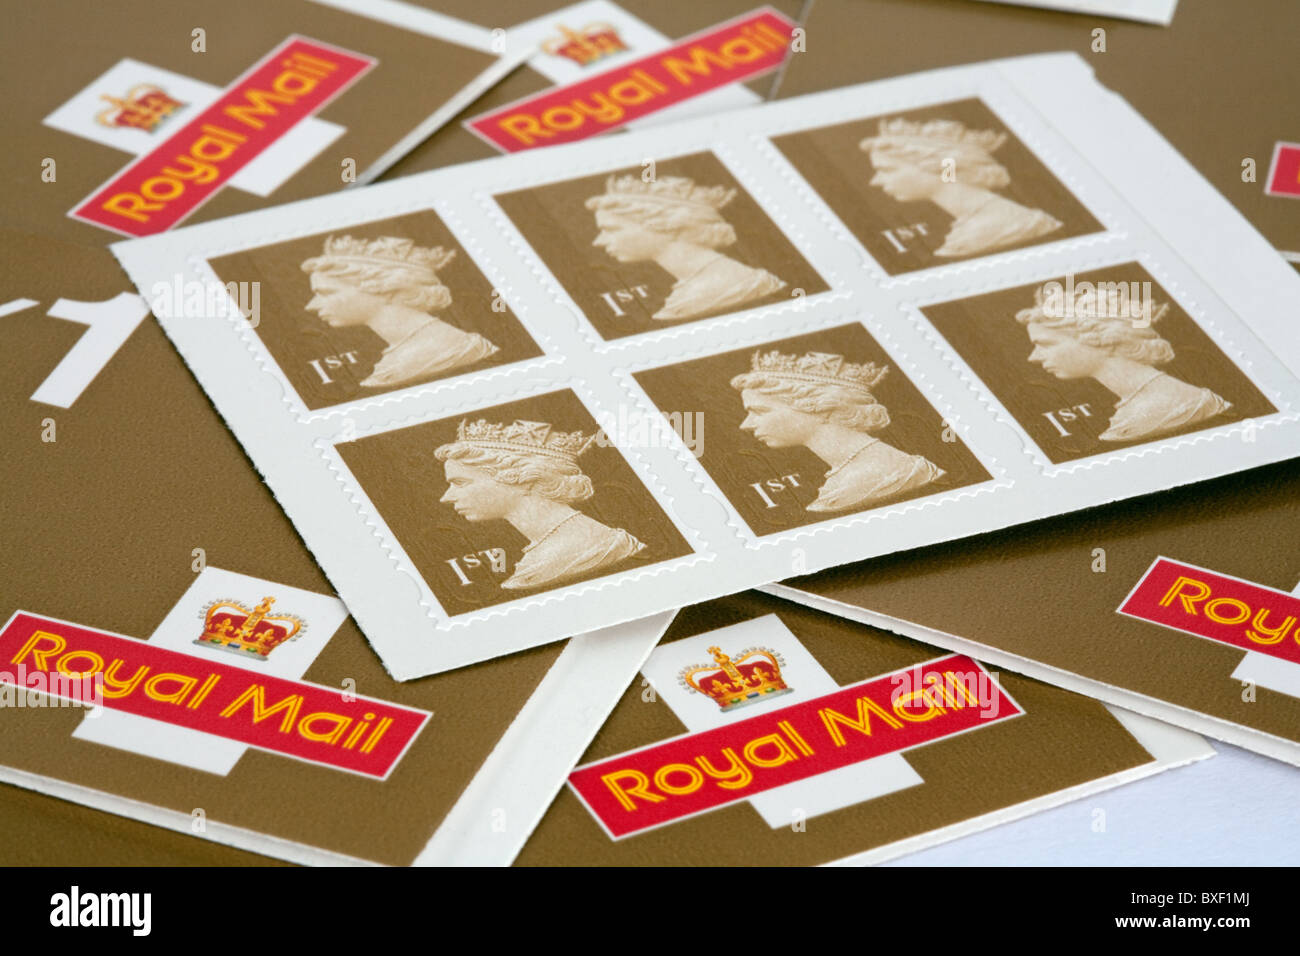 UK Royal Mail First class stamp booklets - Stock Image